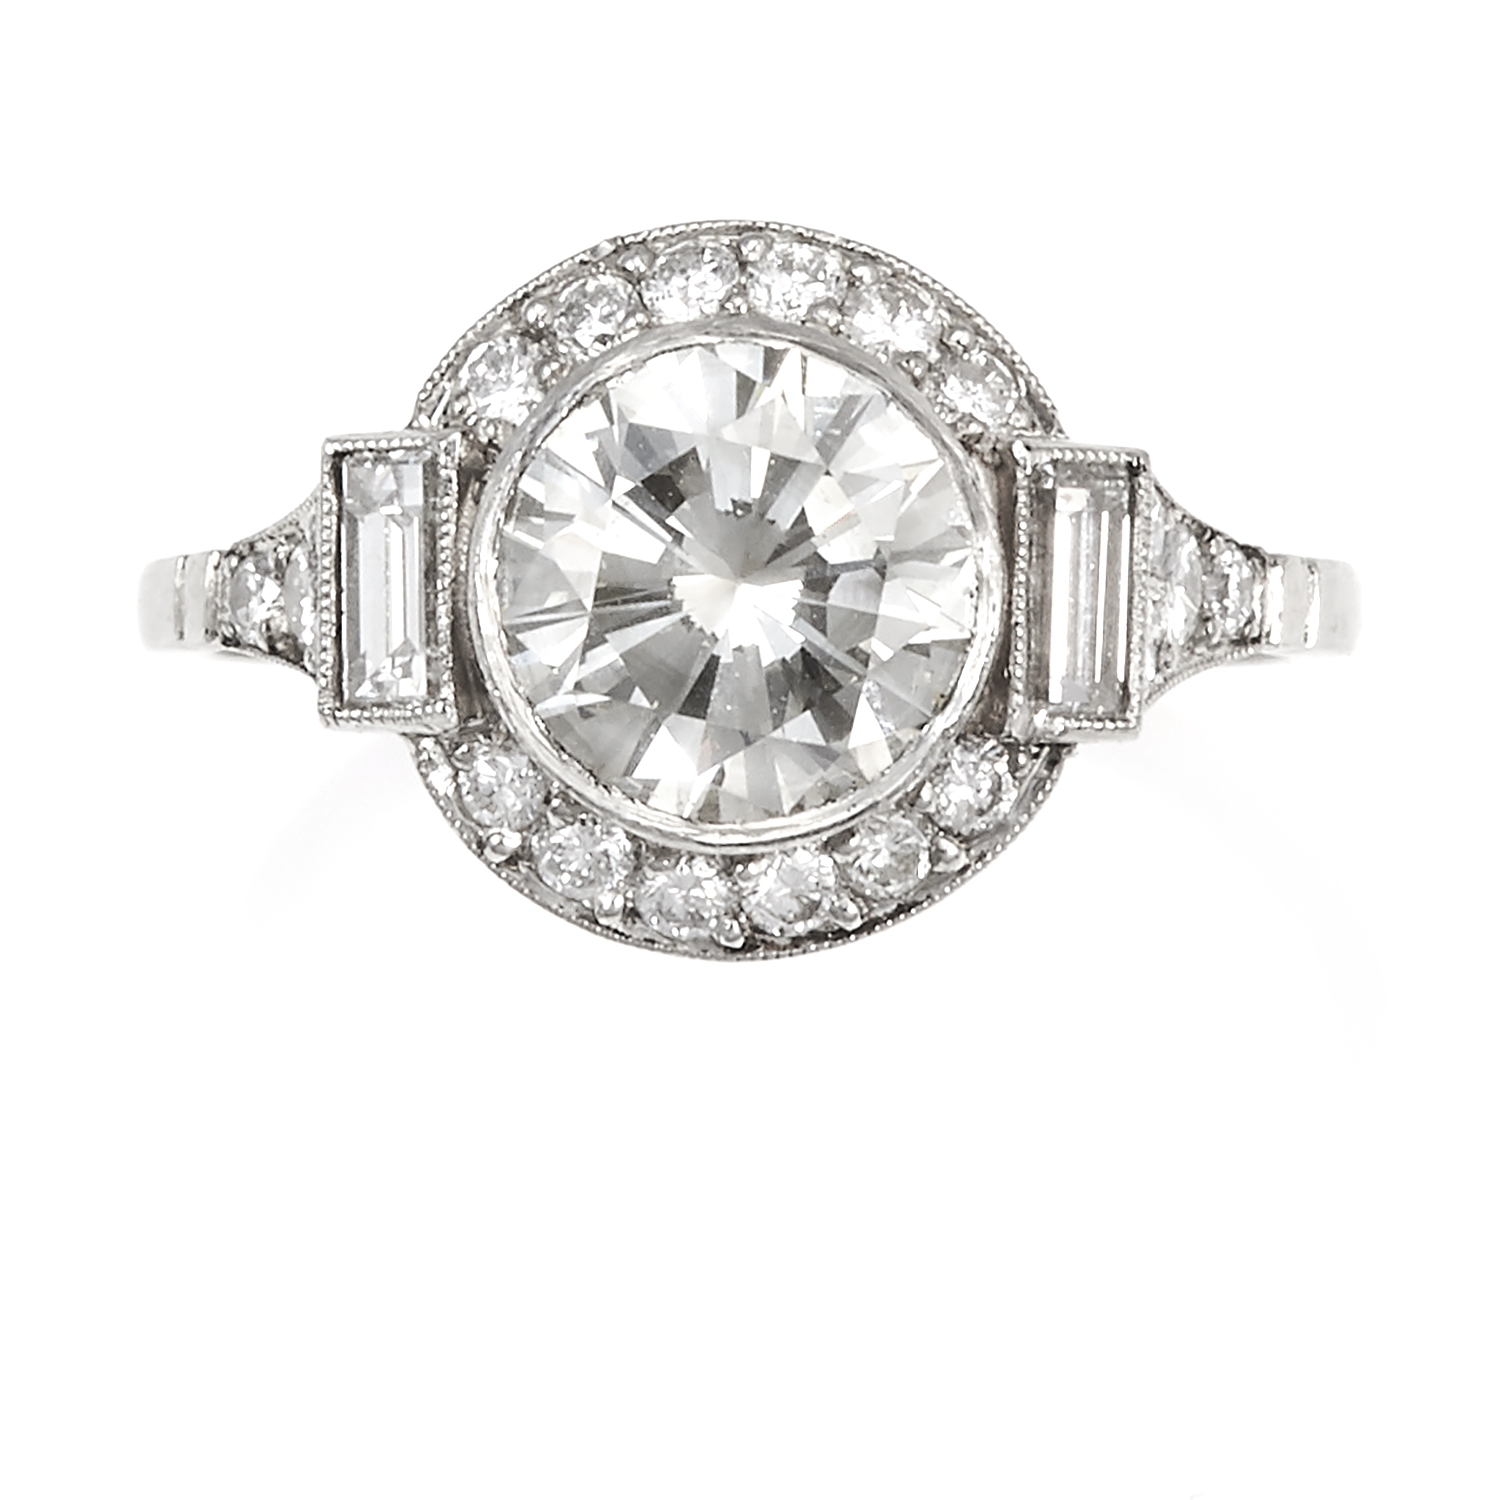 Los 51 - A 1.76 CARAT DIAMOND RING in platinum, set with a central round cut diamond of 1.76 carats within